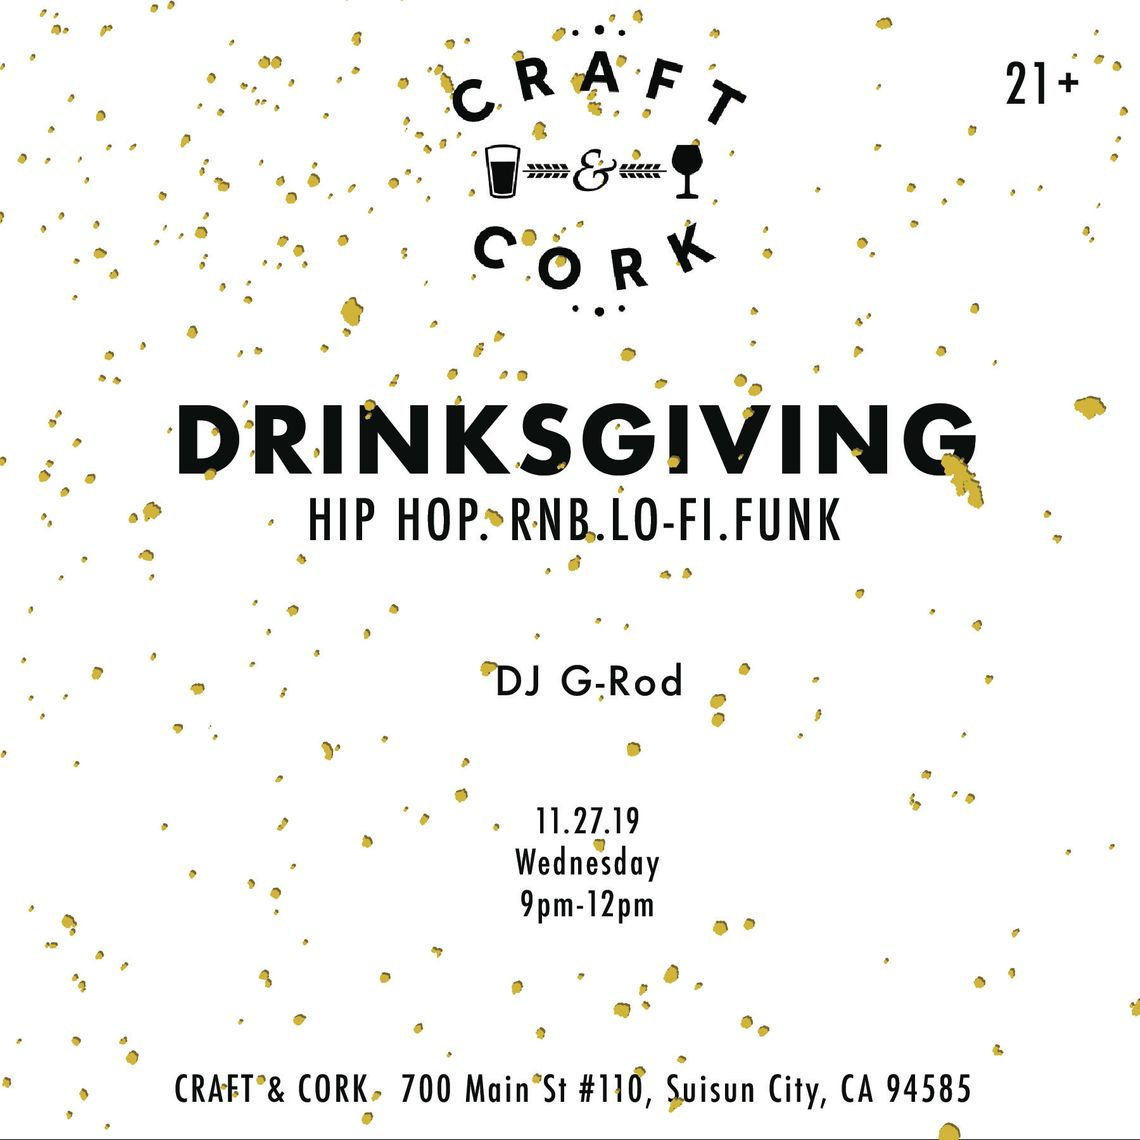 Friday is Trivia Night at Craft & Cork